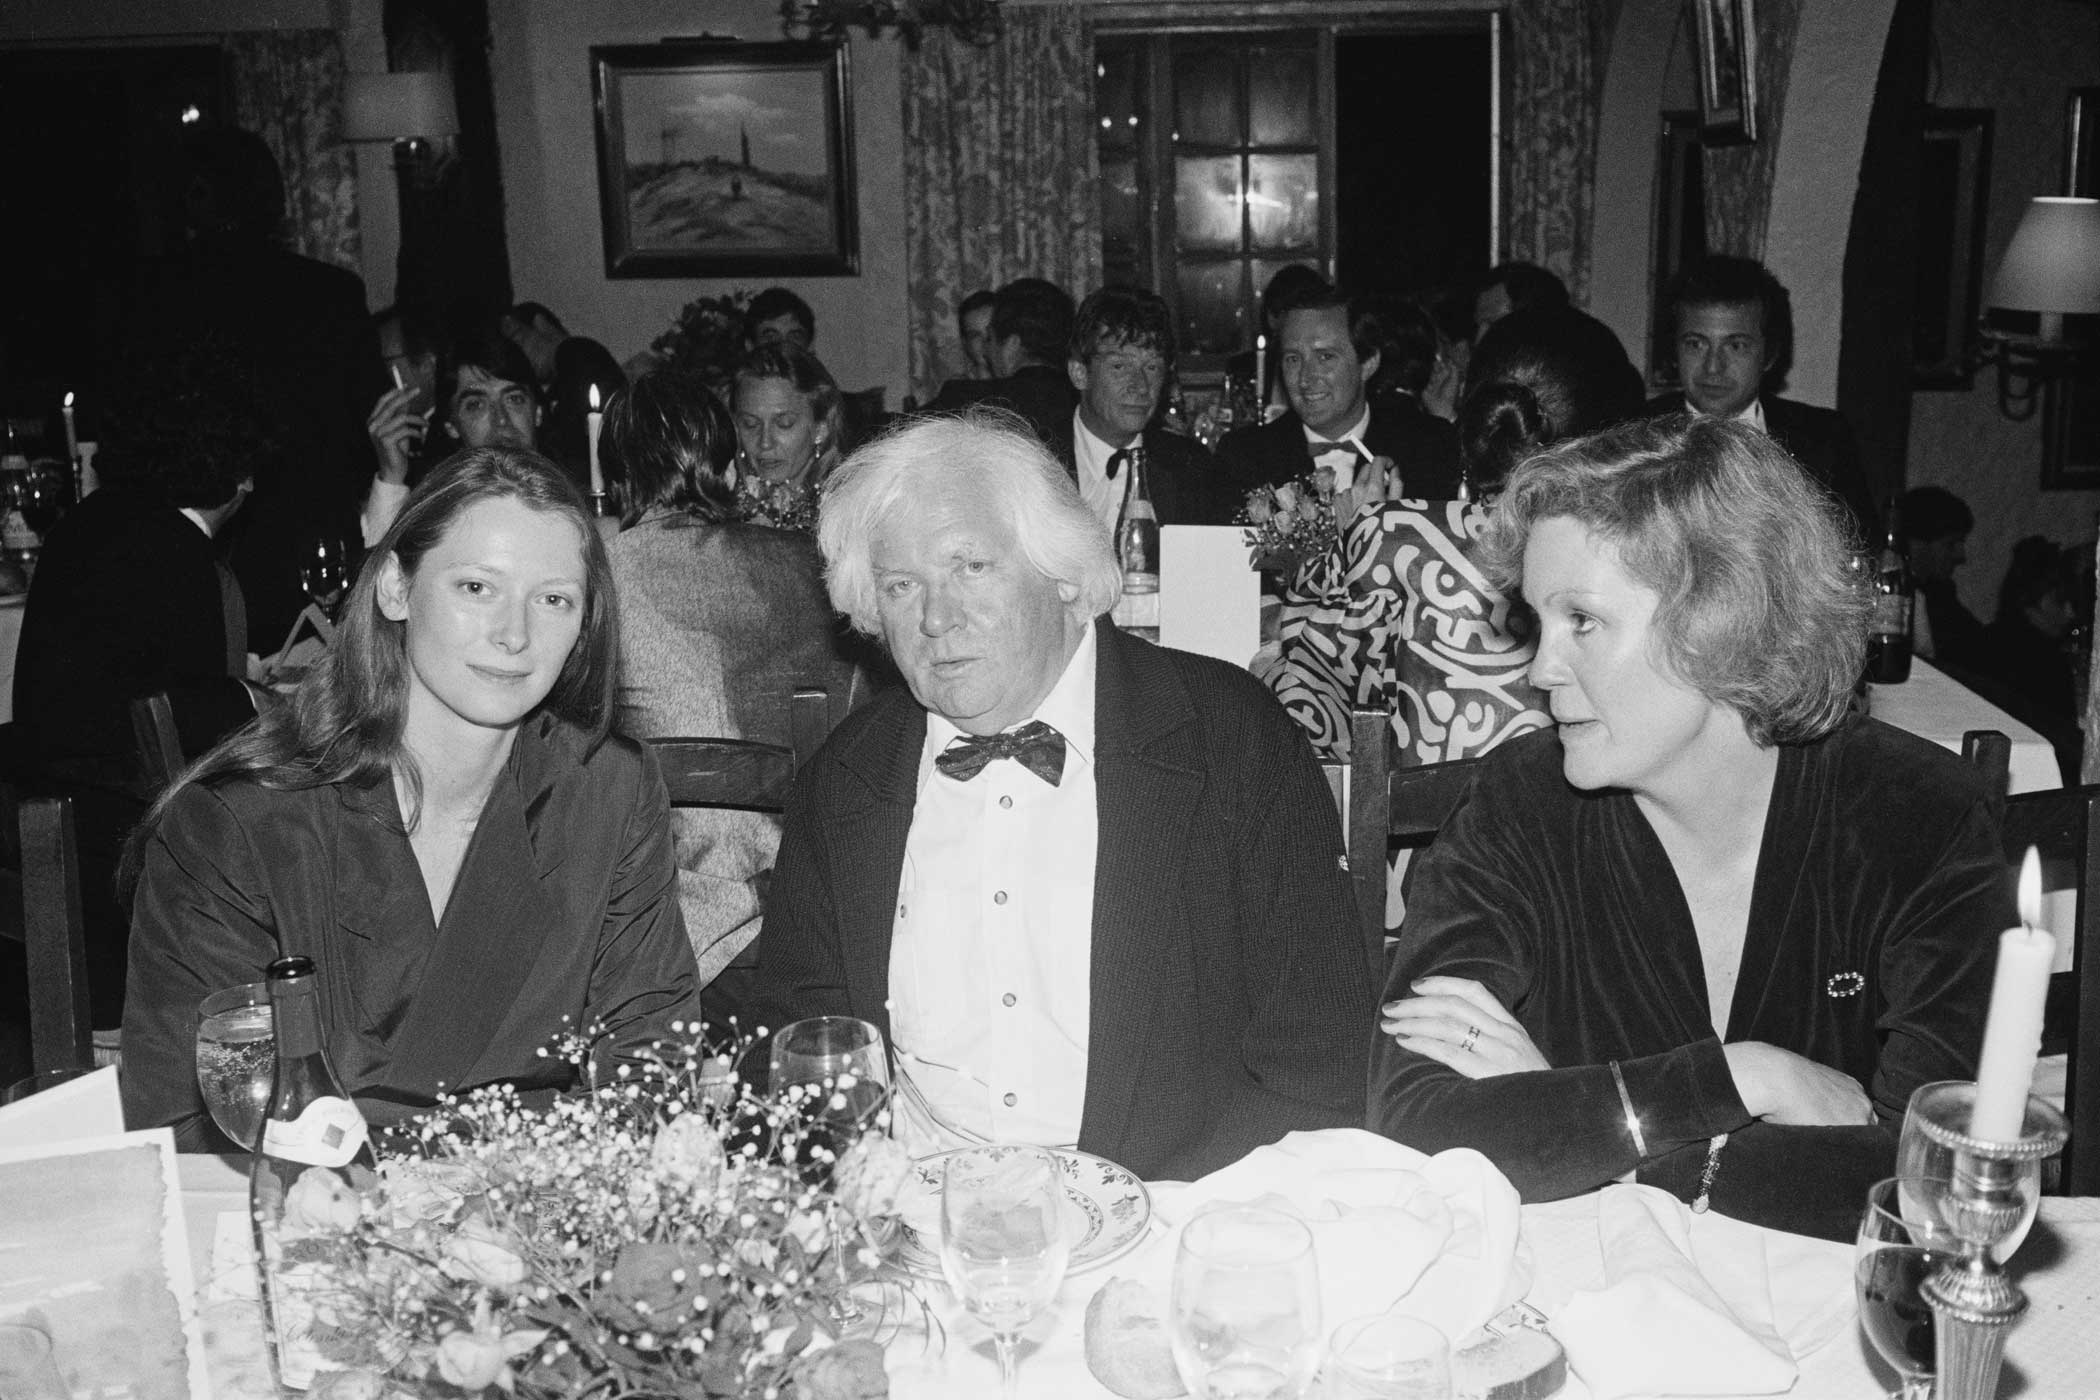 Tilda Swinton, left, and director Ken Russell at the Cannes Film Festival for their film Aria in Cannes, France in May 1987.